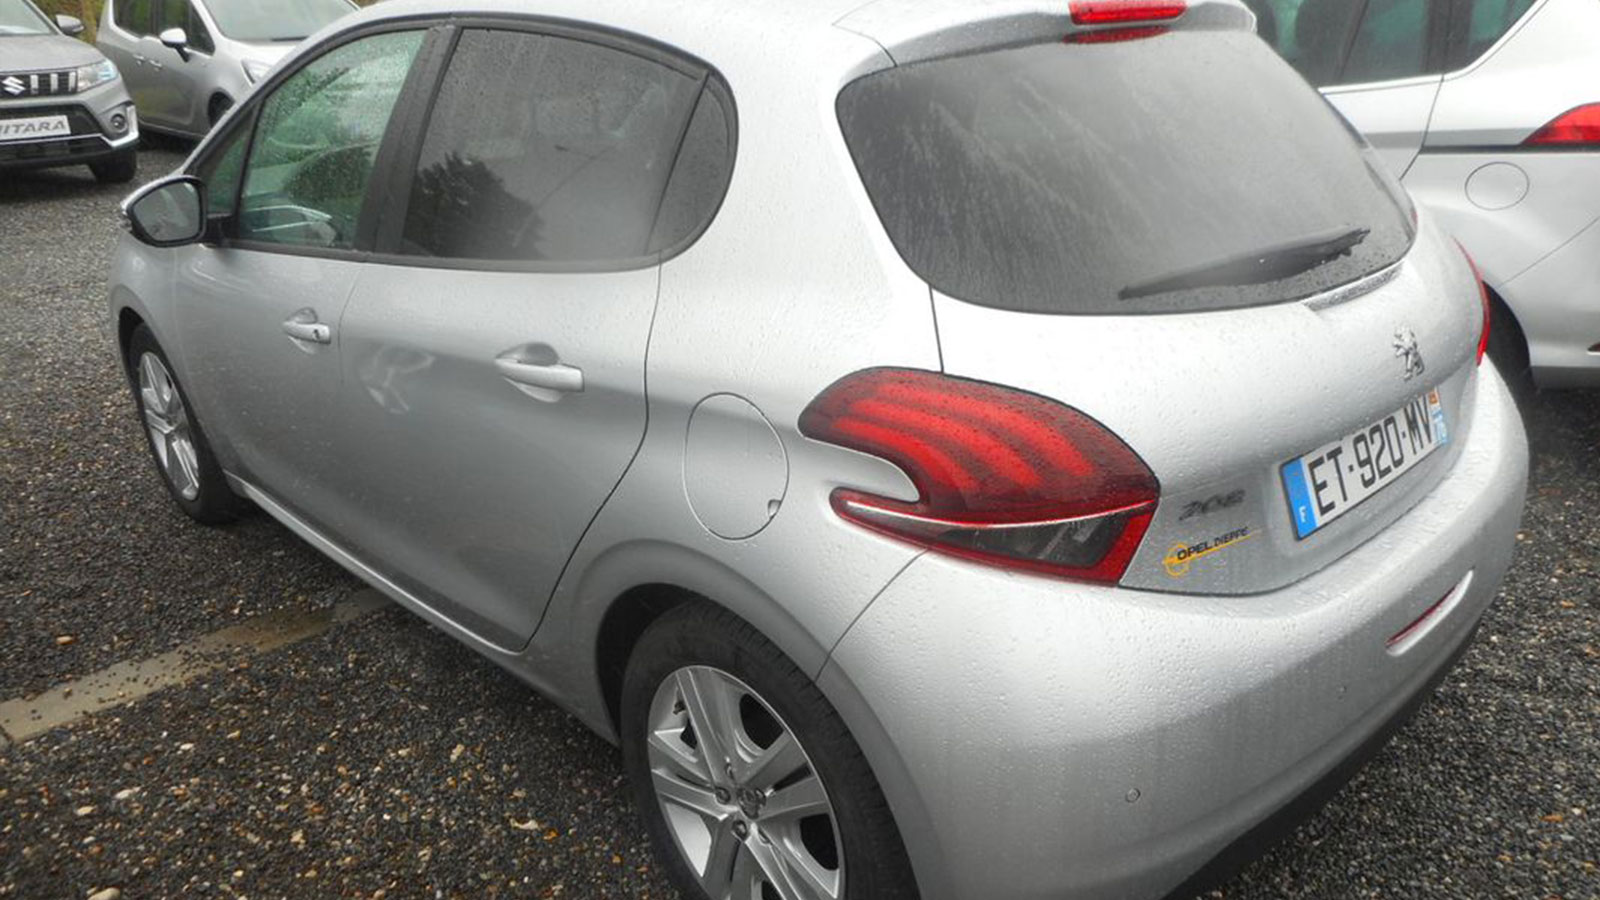 PEUGEOT 208 1.2 PURETECH 82CH STYLE full